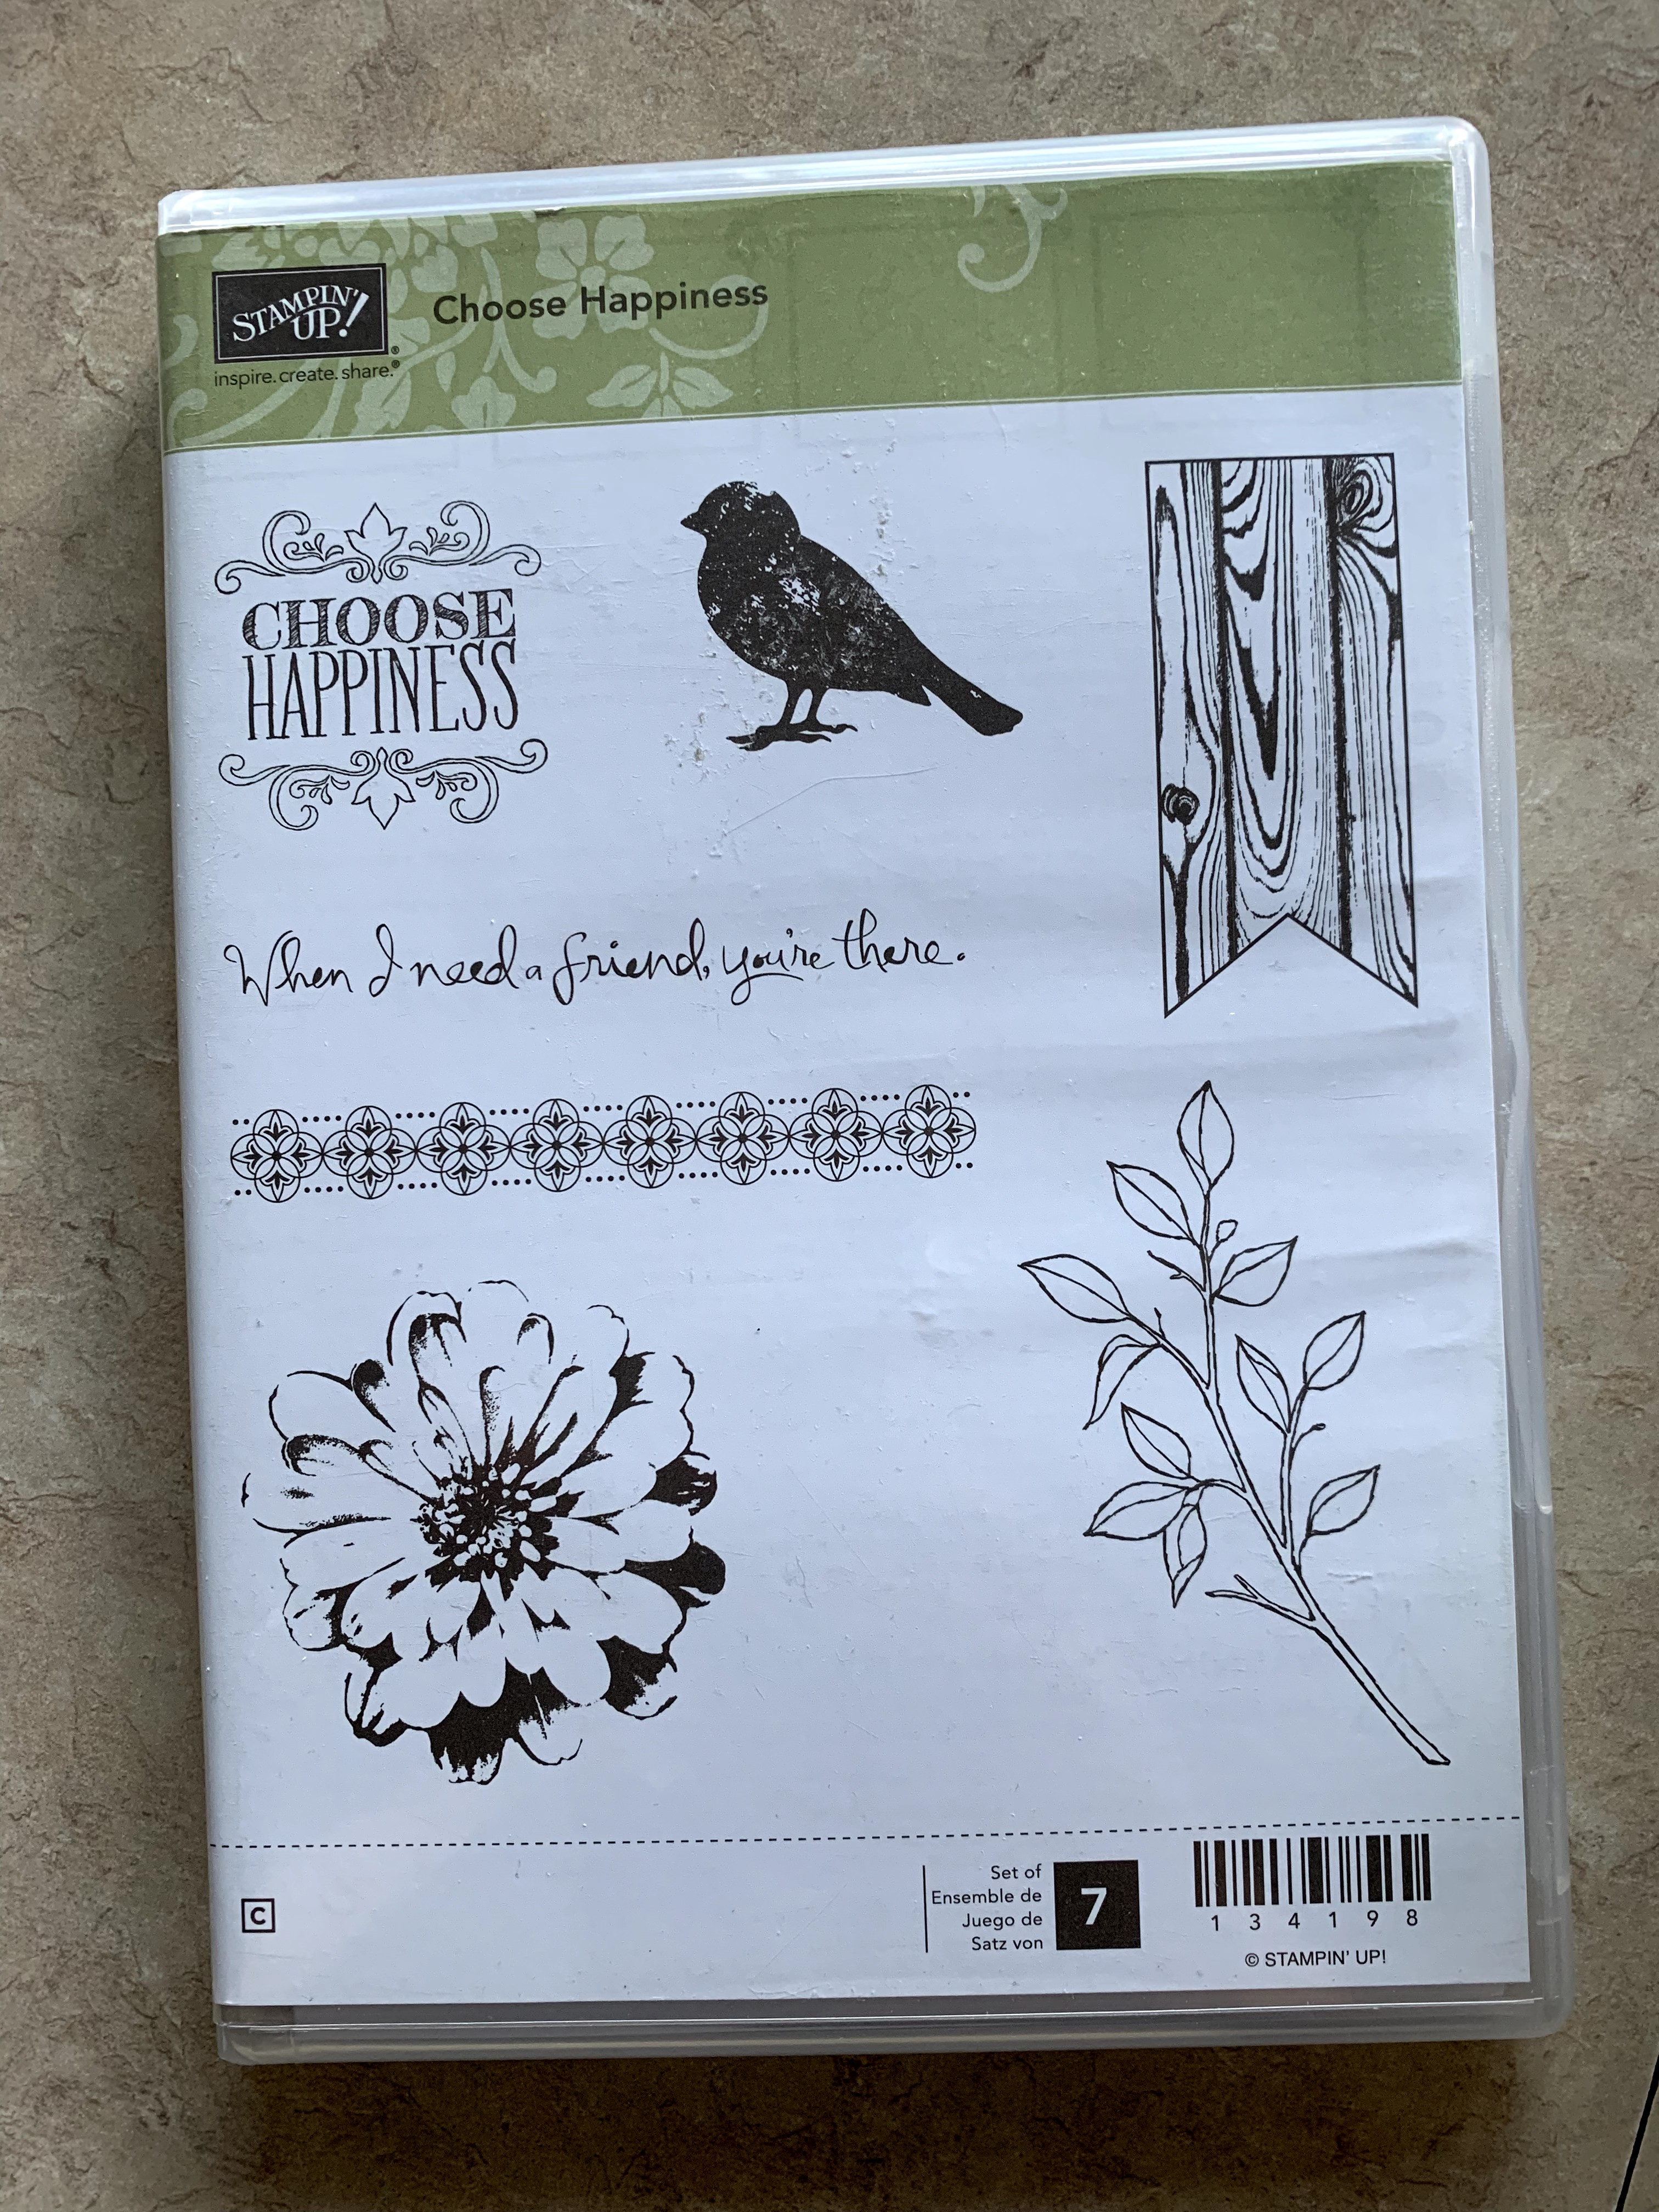 Stampin' Up! Choose Happiness clear mount stamp set